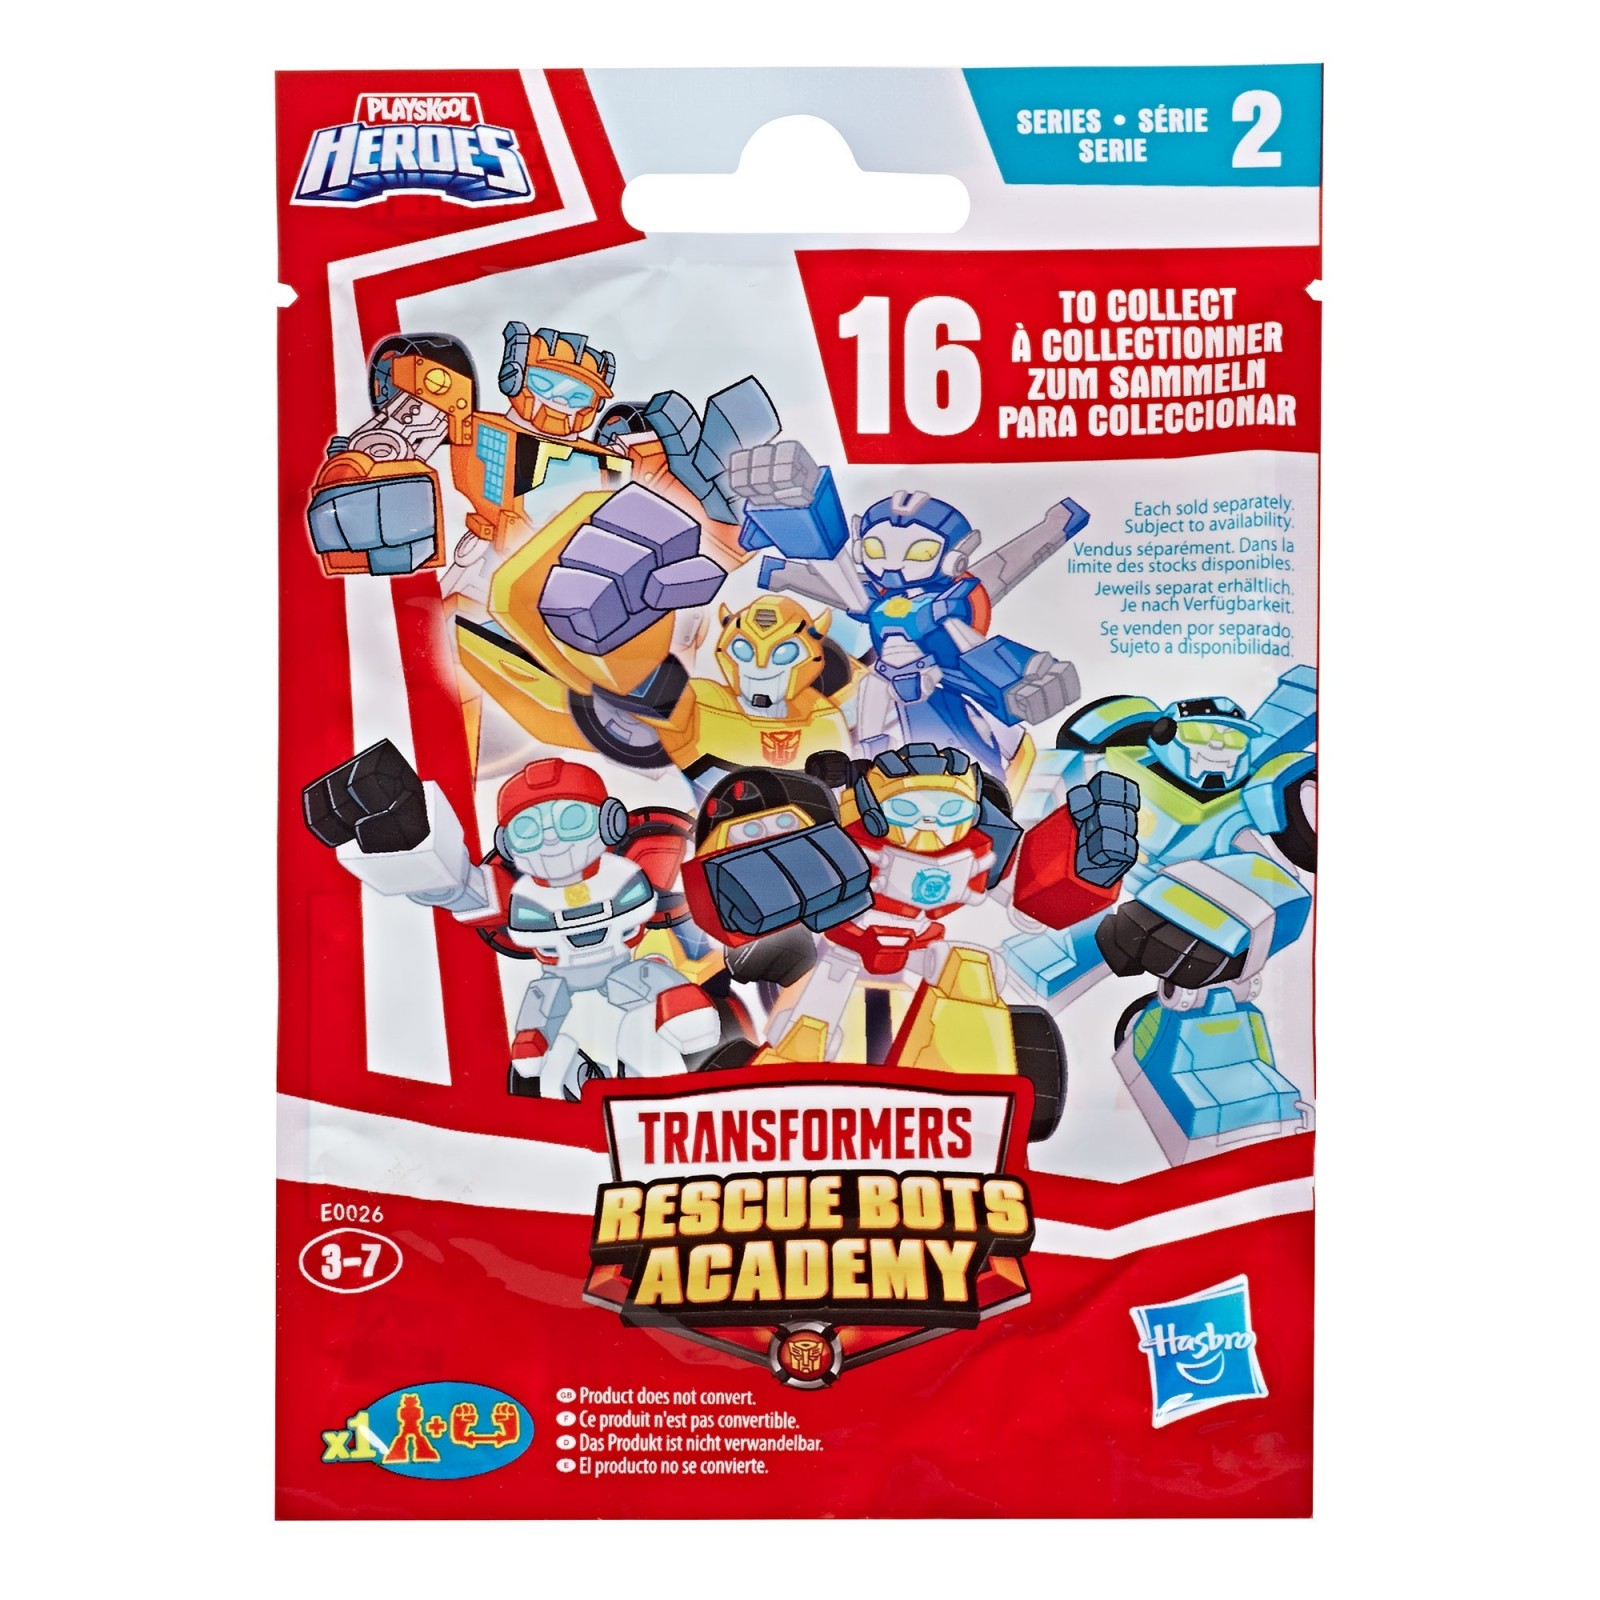 Transformers News: Transformers Rescue Bots Academy Mini Figures Wave 2 Revealed